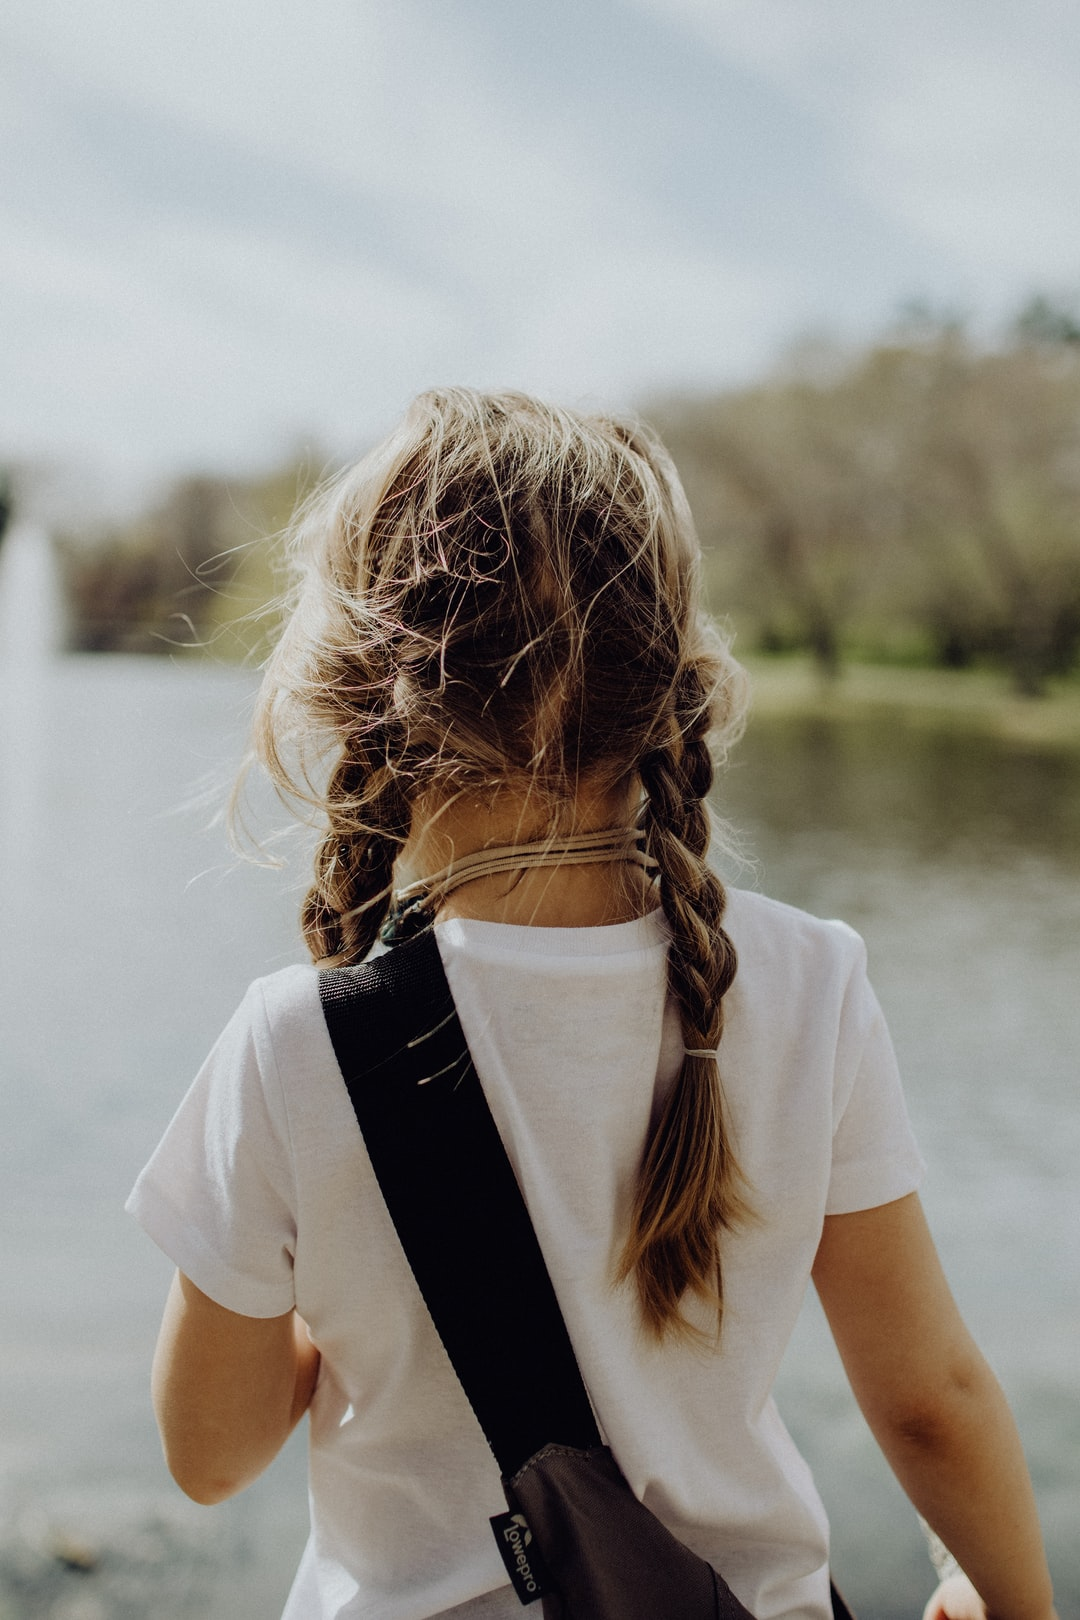 Little girl in a white T shirt with braids and a bag slung over her shoulder